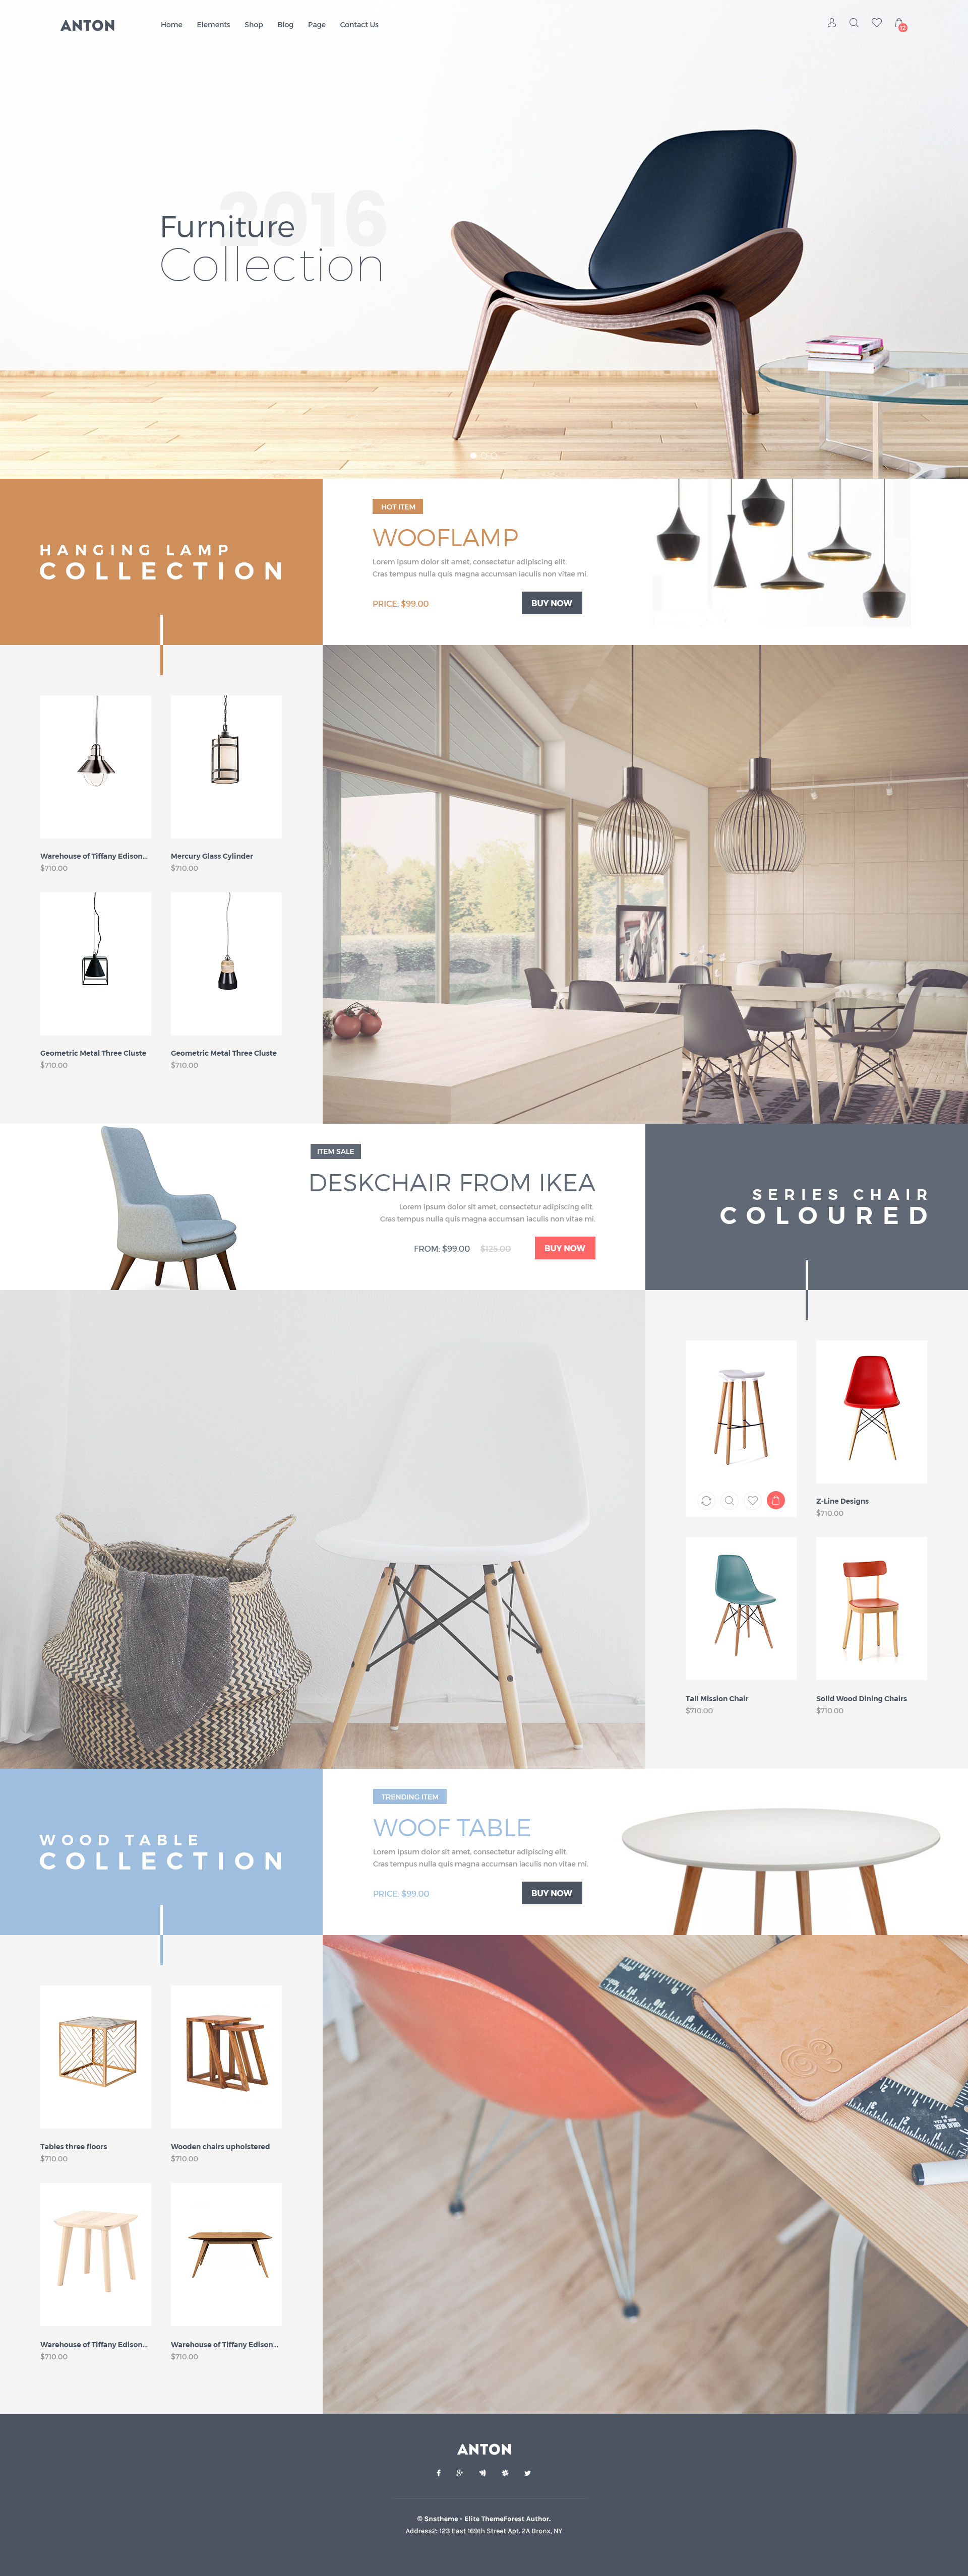 Anton Ecommerce Furniture PSD Template by snstheme | ThemeForest